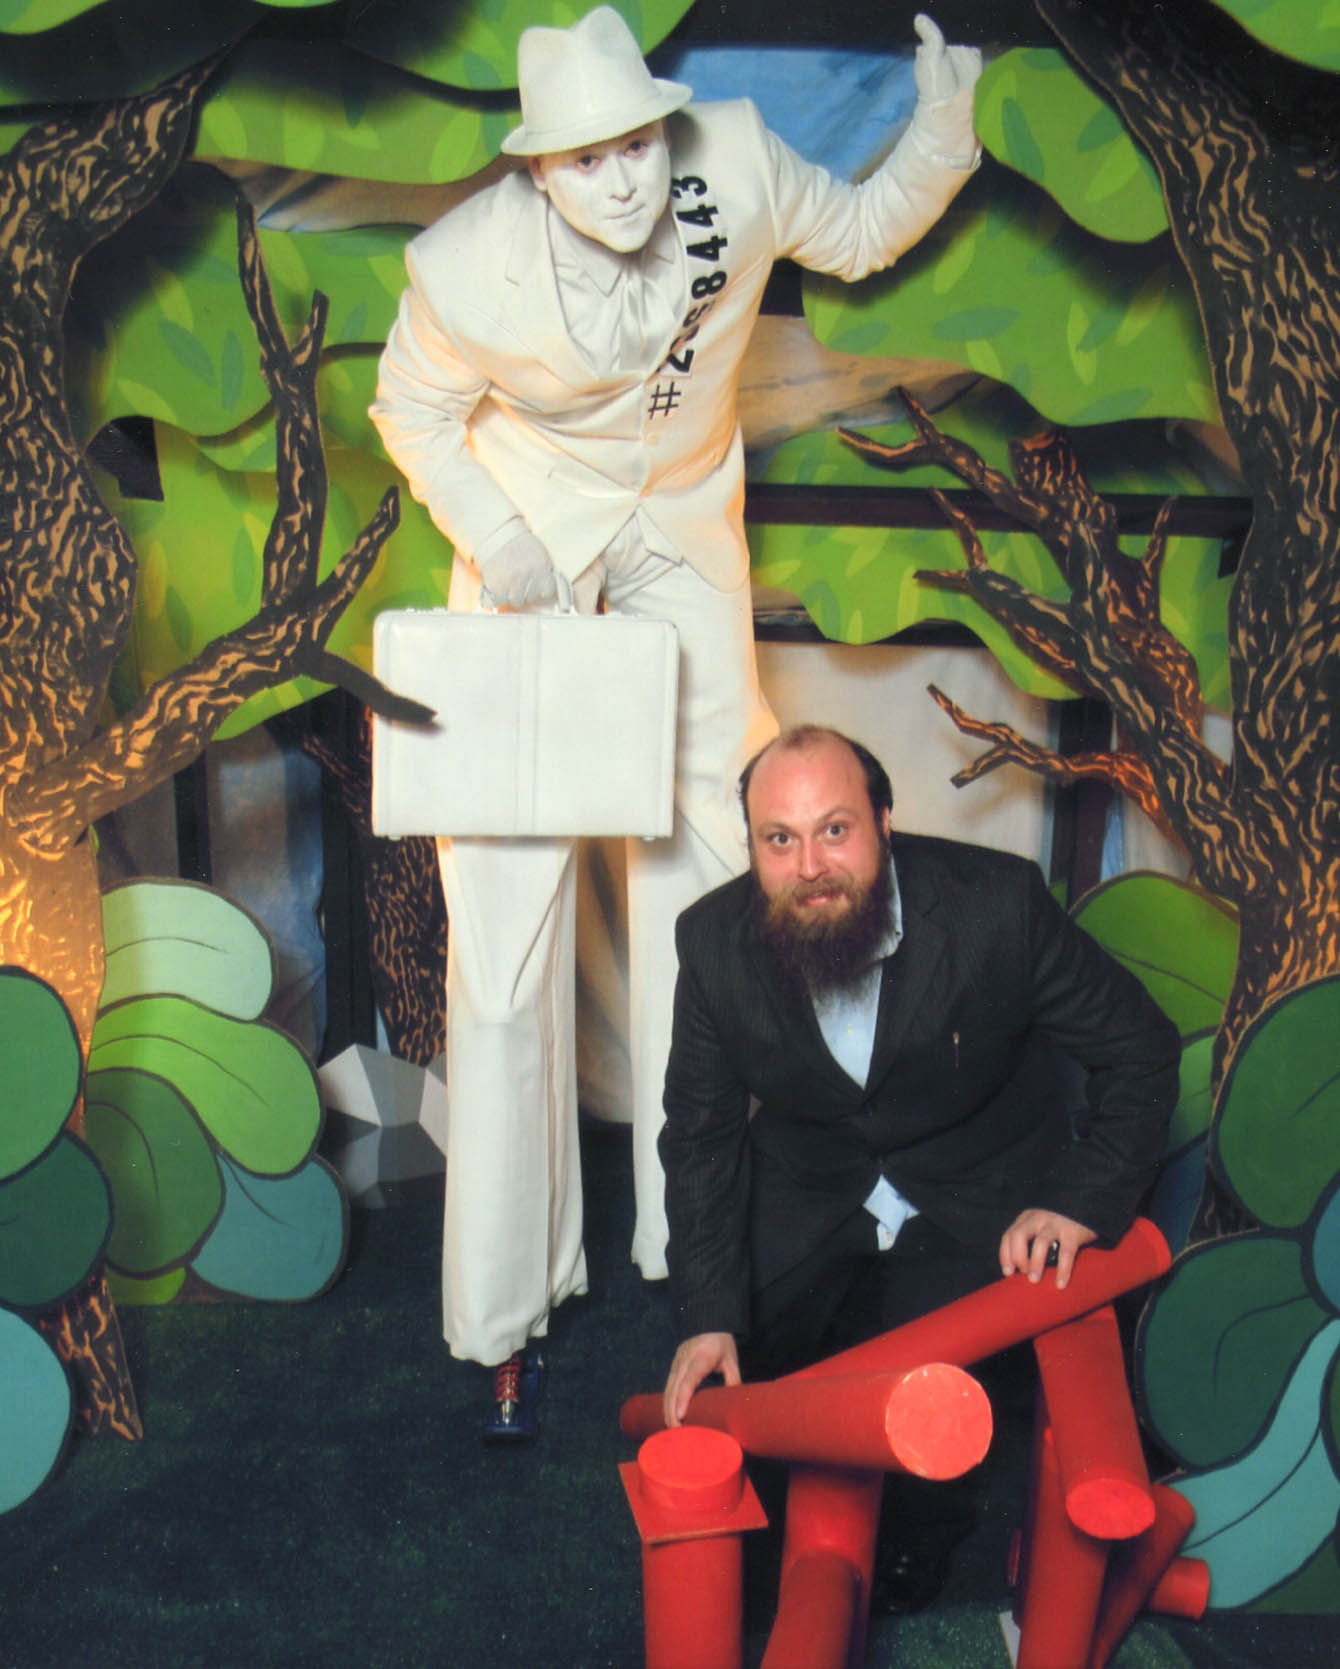 OMG Josh at an art opening